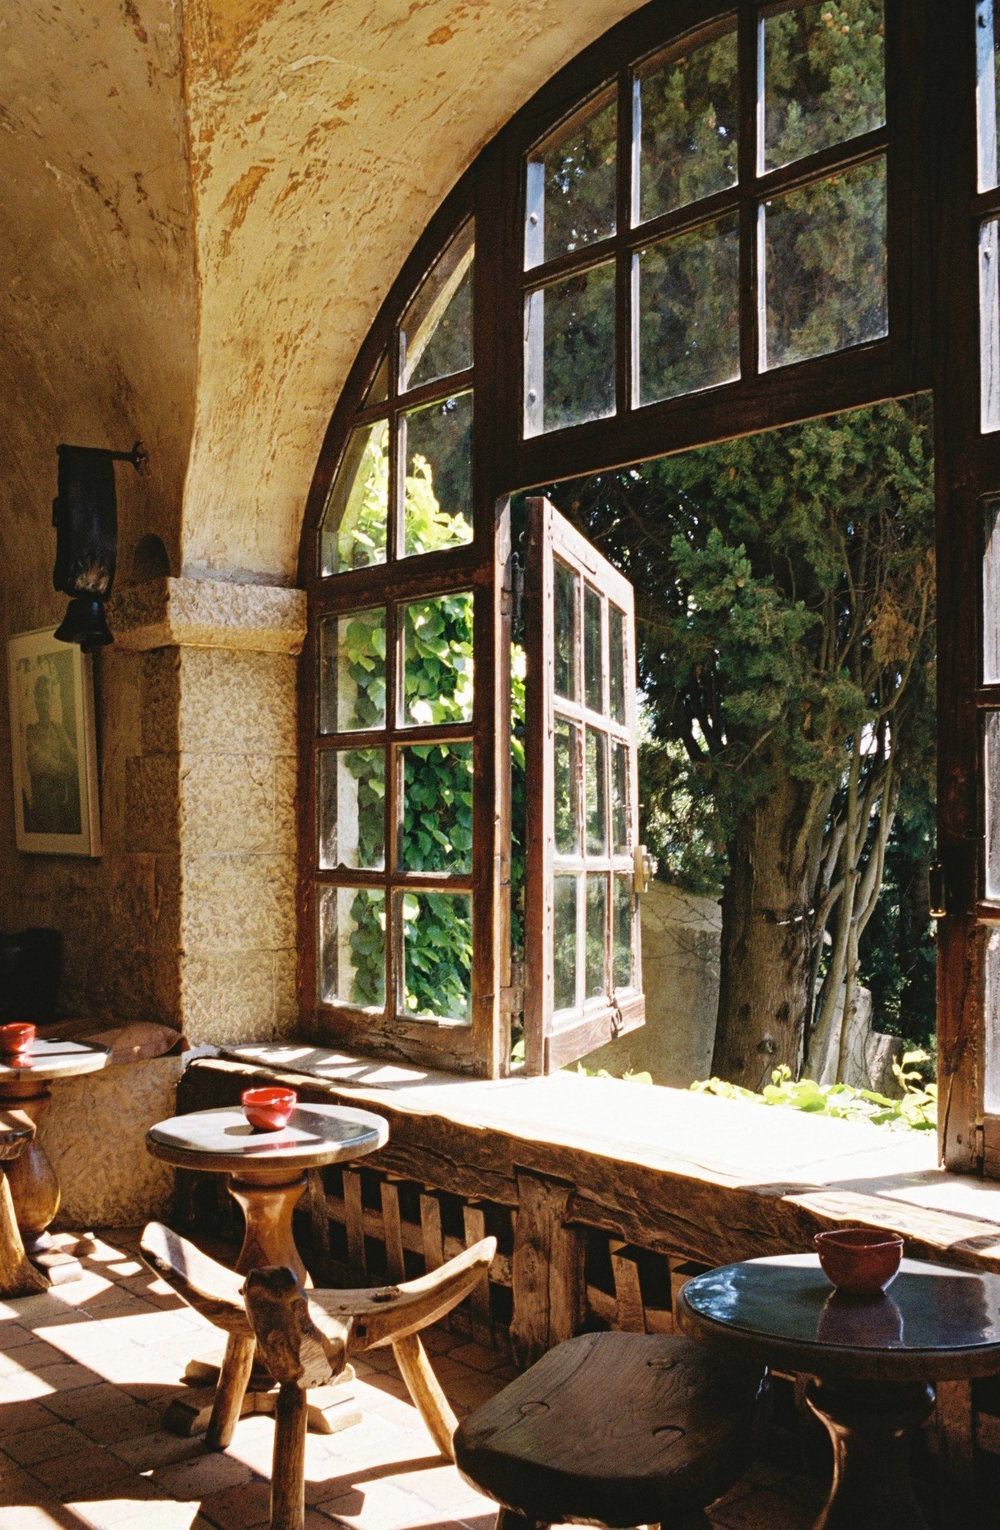 La Colombe d'or, 17